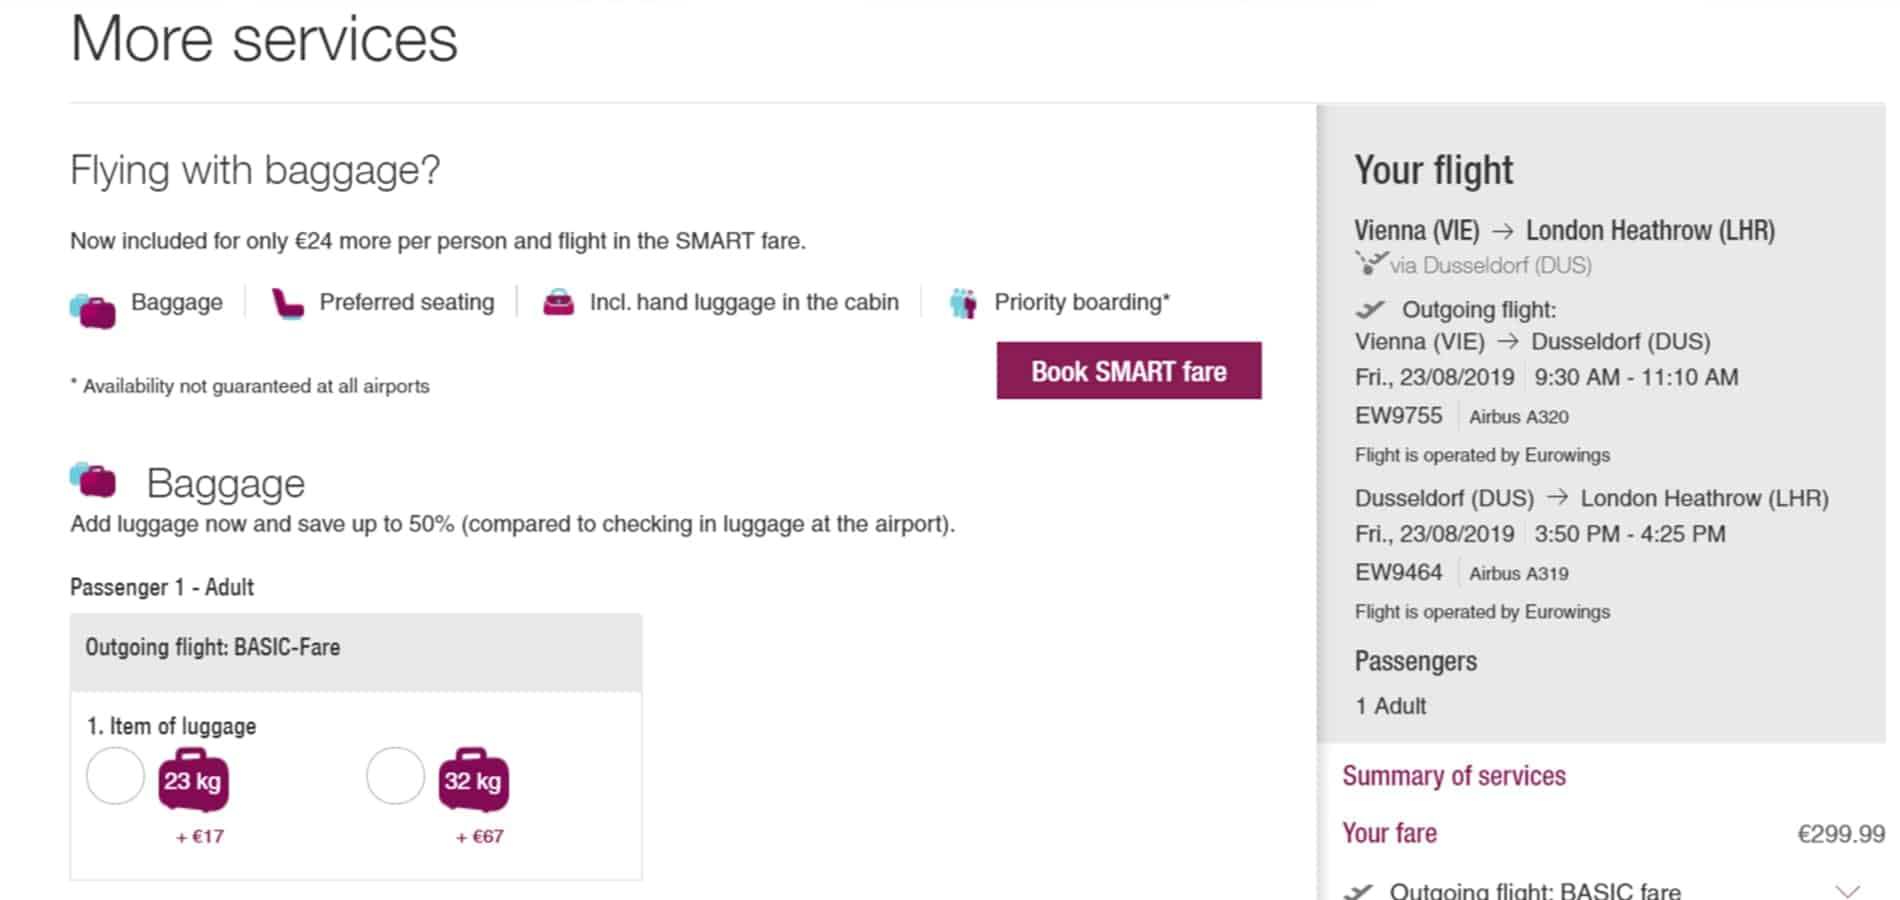 avoid-extra-service when buying flights